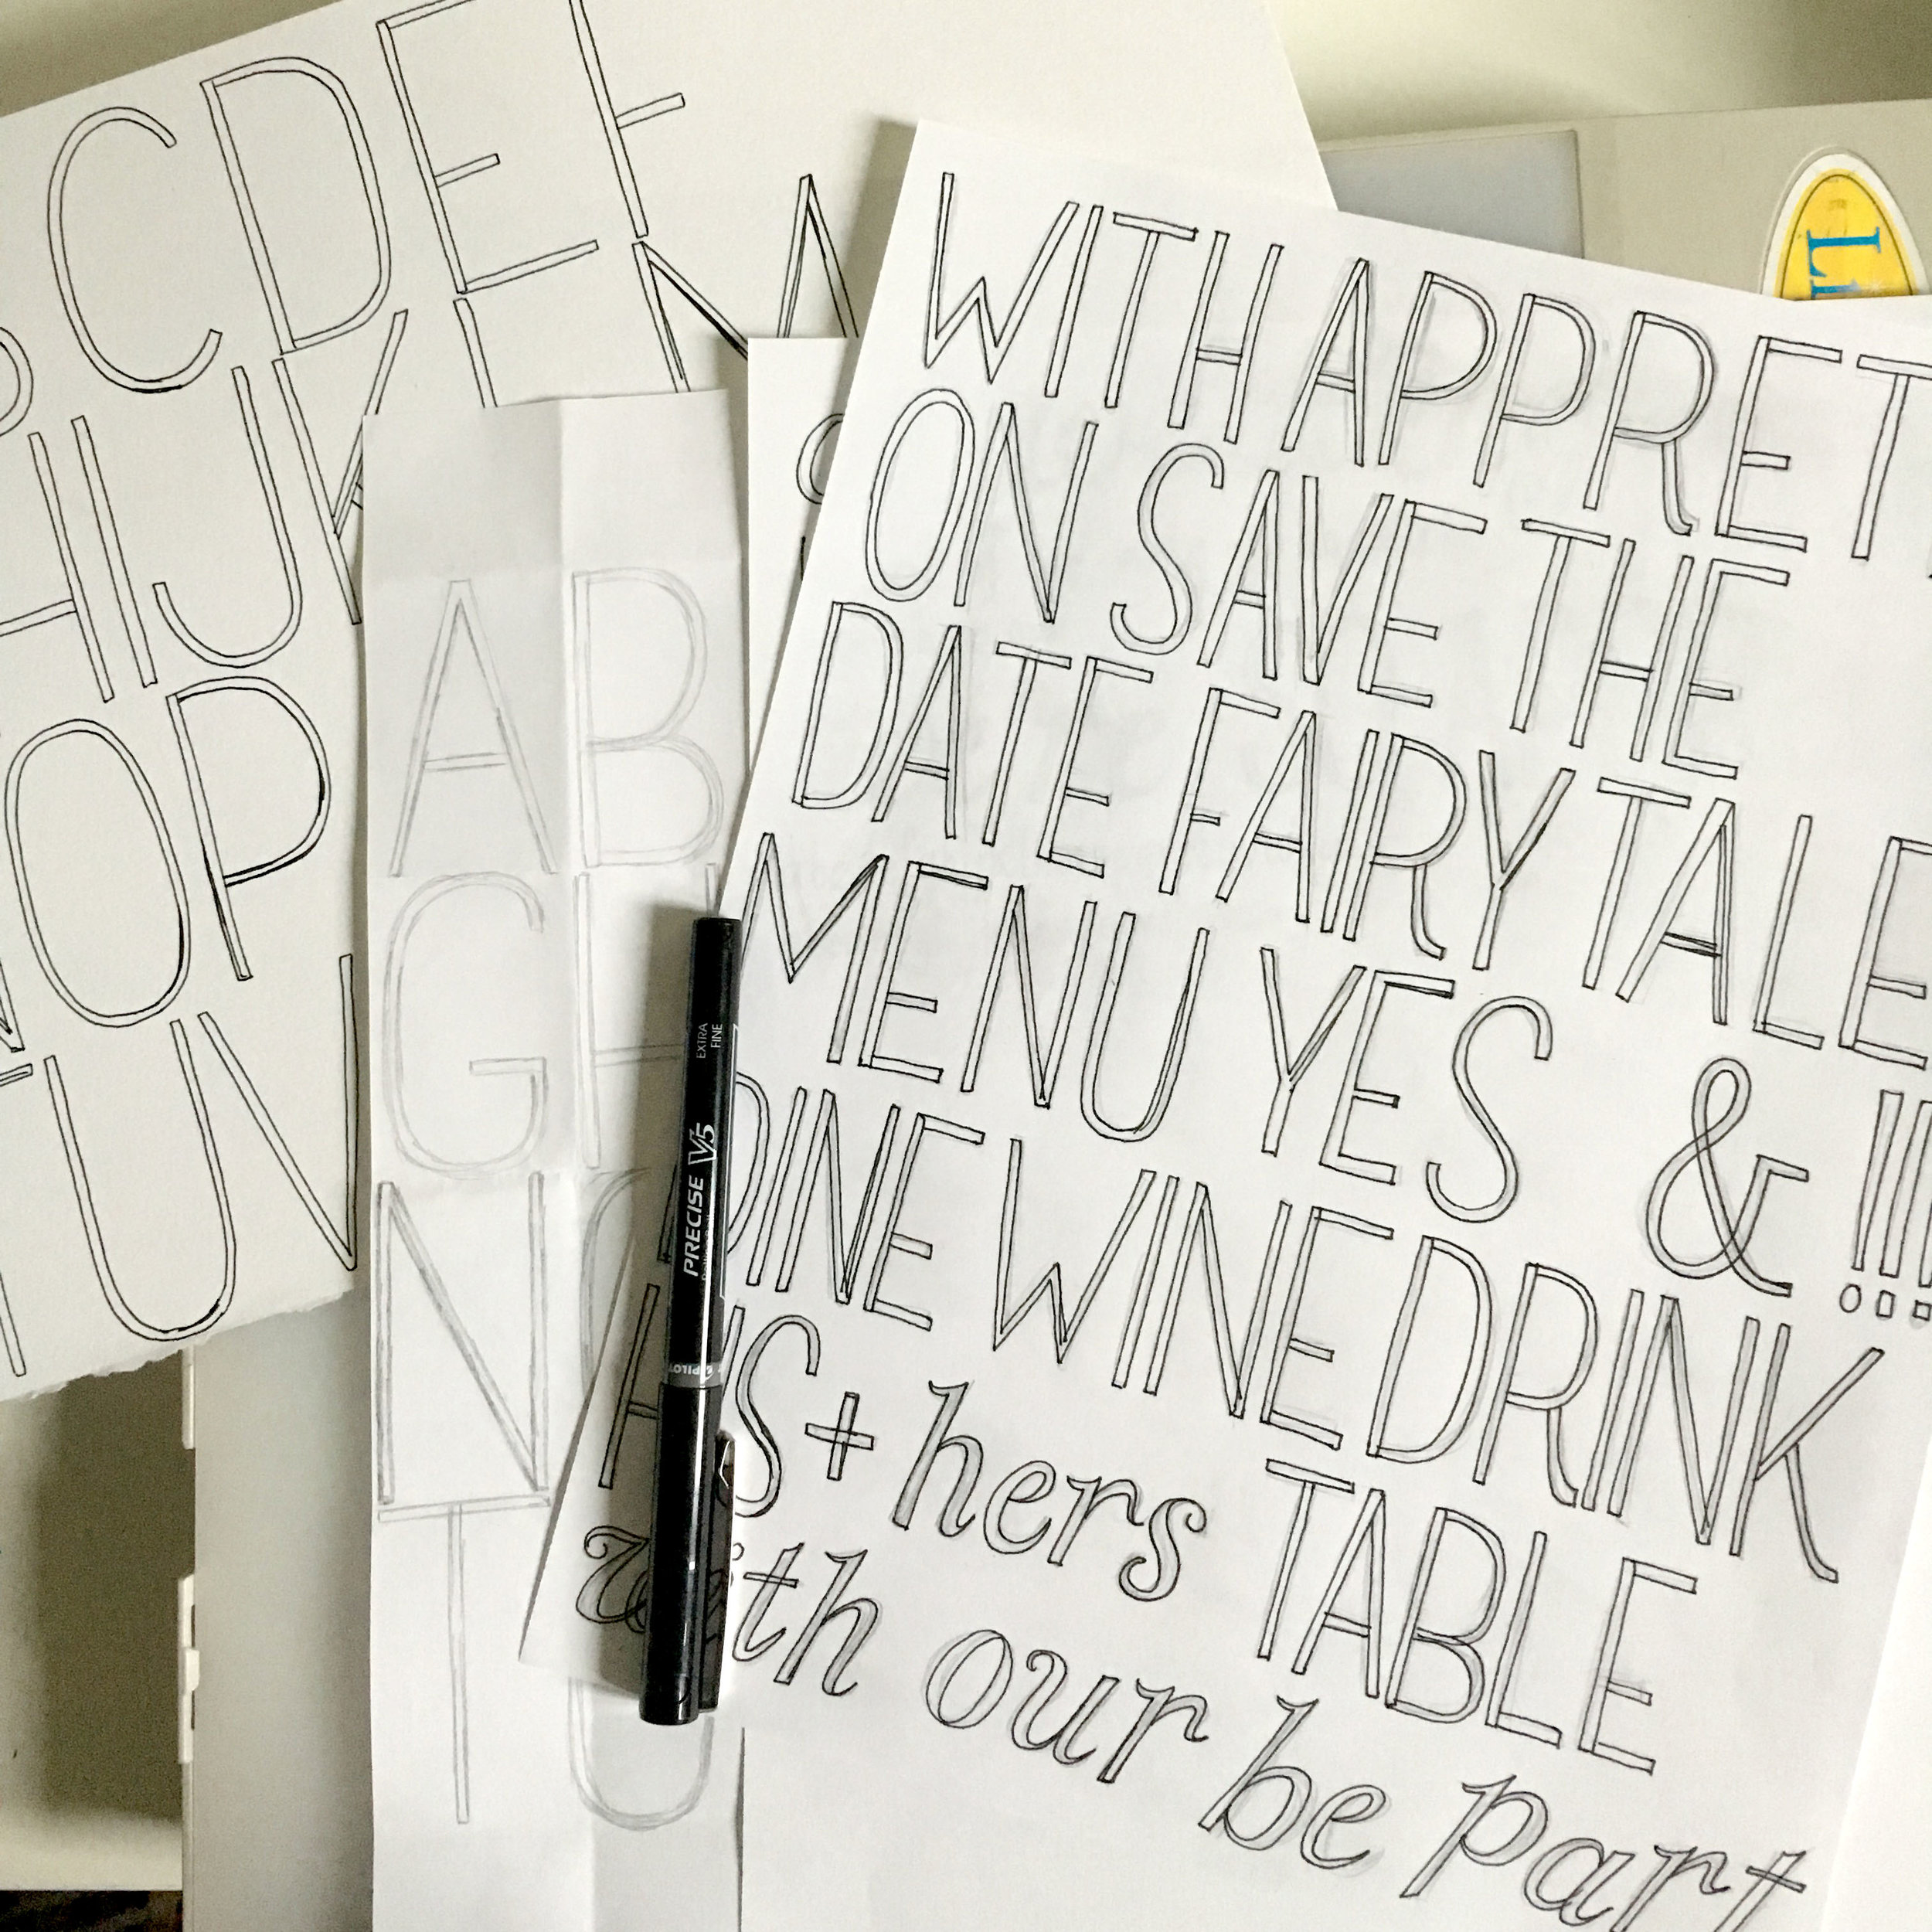 More sketches and inked letters inspired by the original print. These were then used to create a font to put into the invitation suites so they could be easily customized.